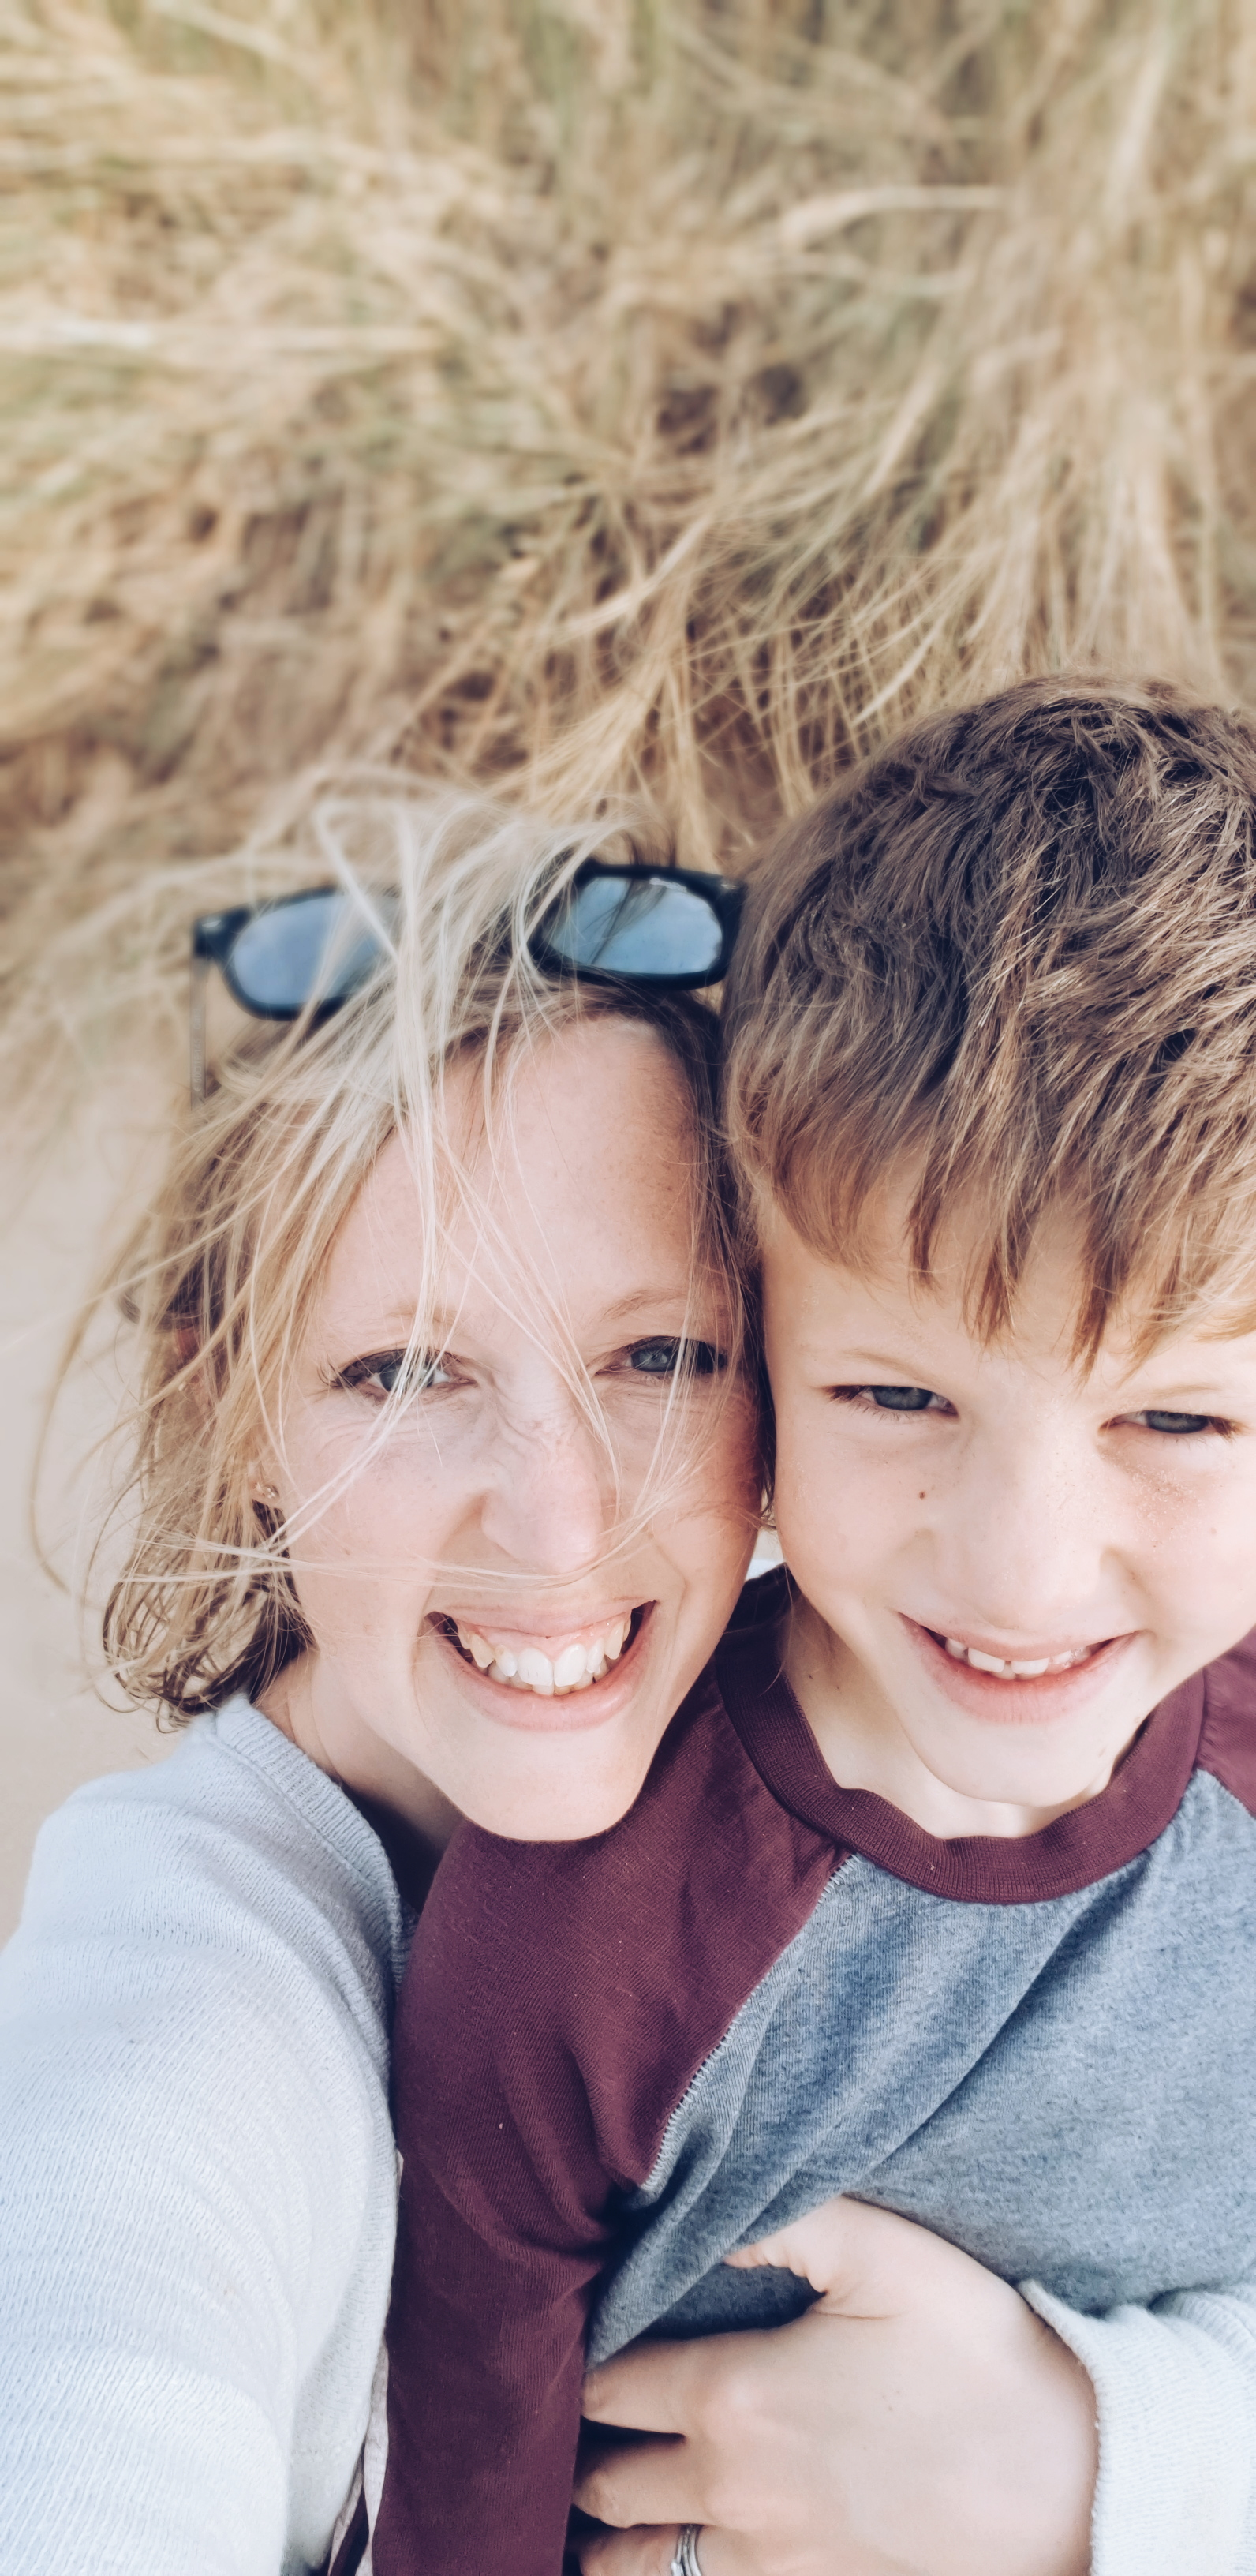 Disclosure 5 minutes after this idyllic mother and son photo was taken he did an emergency poo in a sand dune